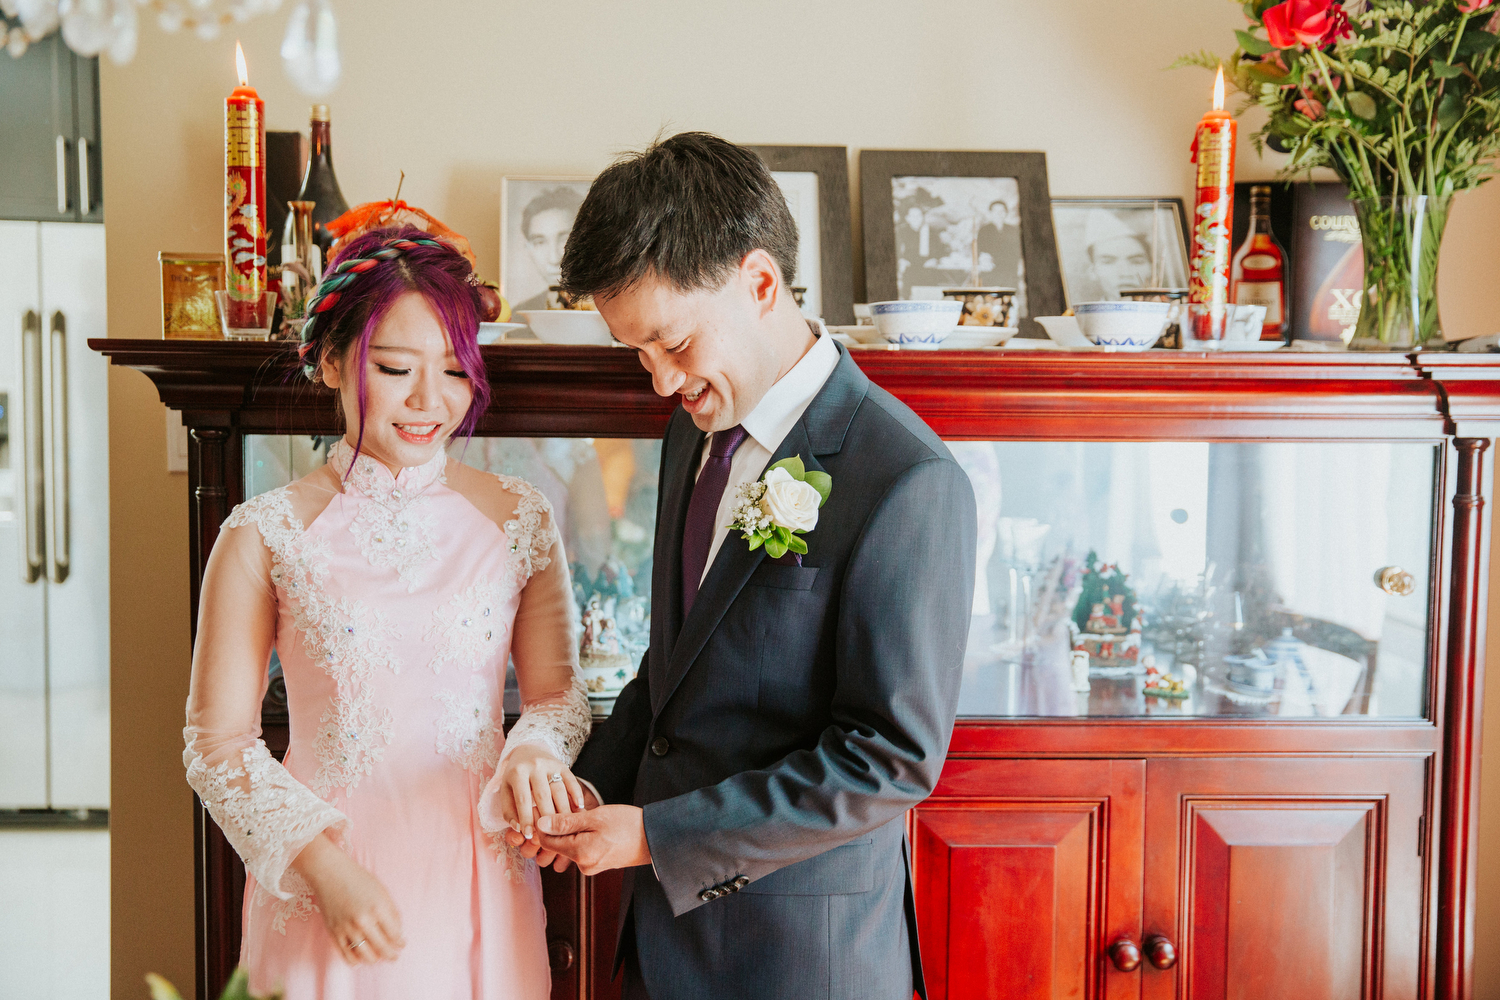 intimate at home wedding candid photography